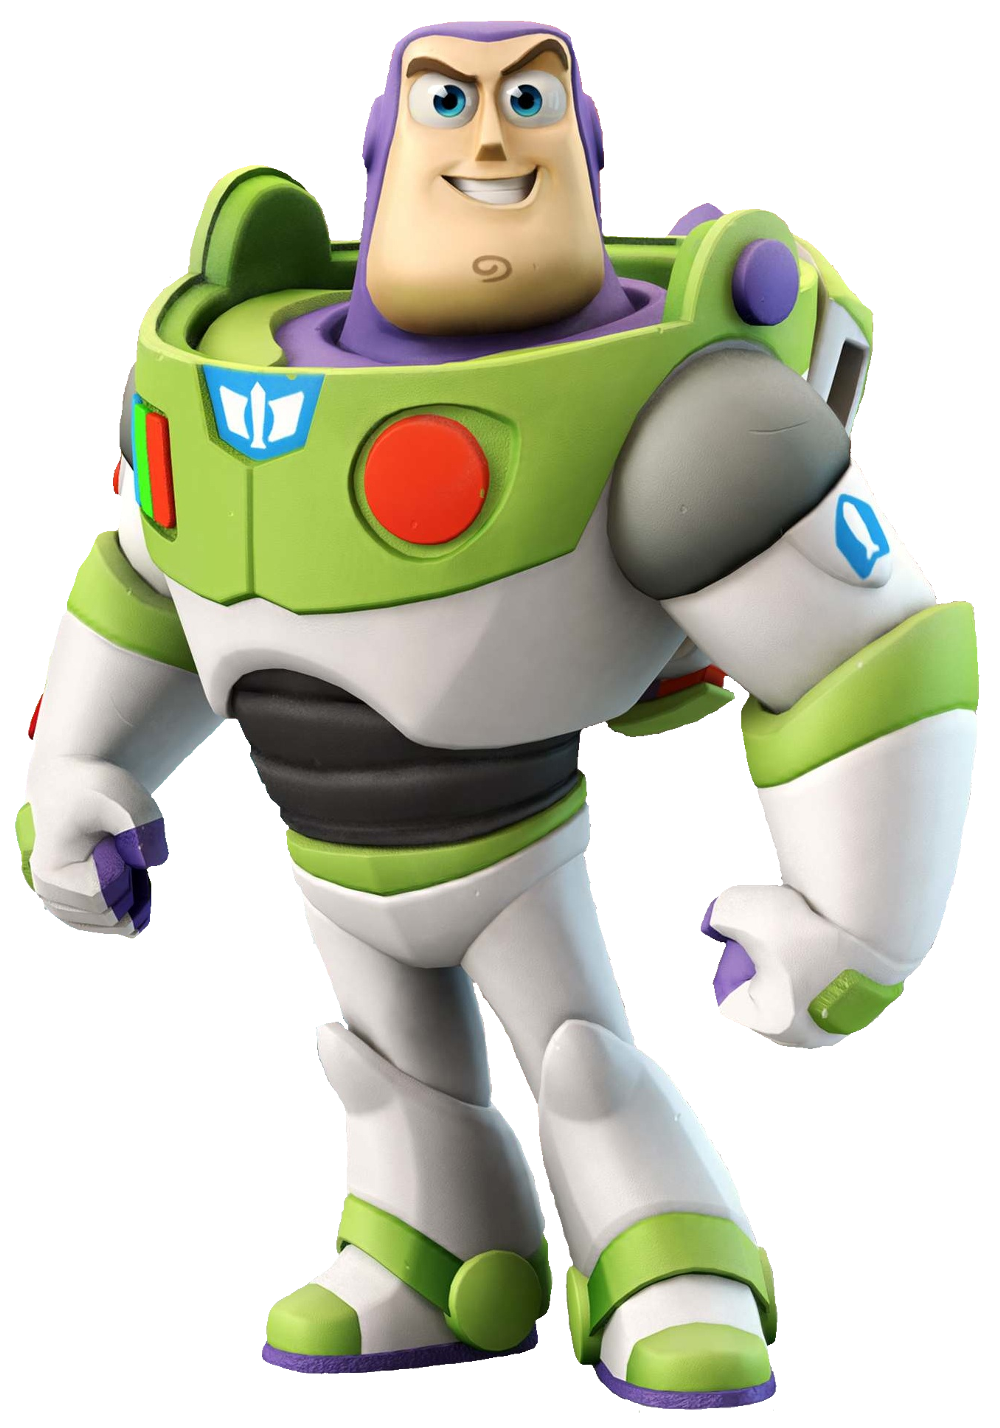 Buzz Lightyear Toy Story Png 3 Png Image